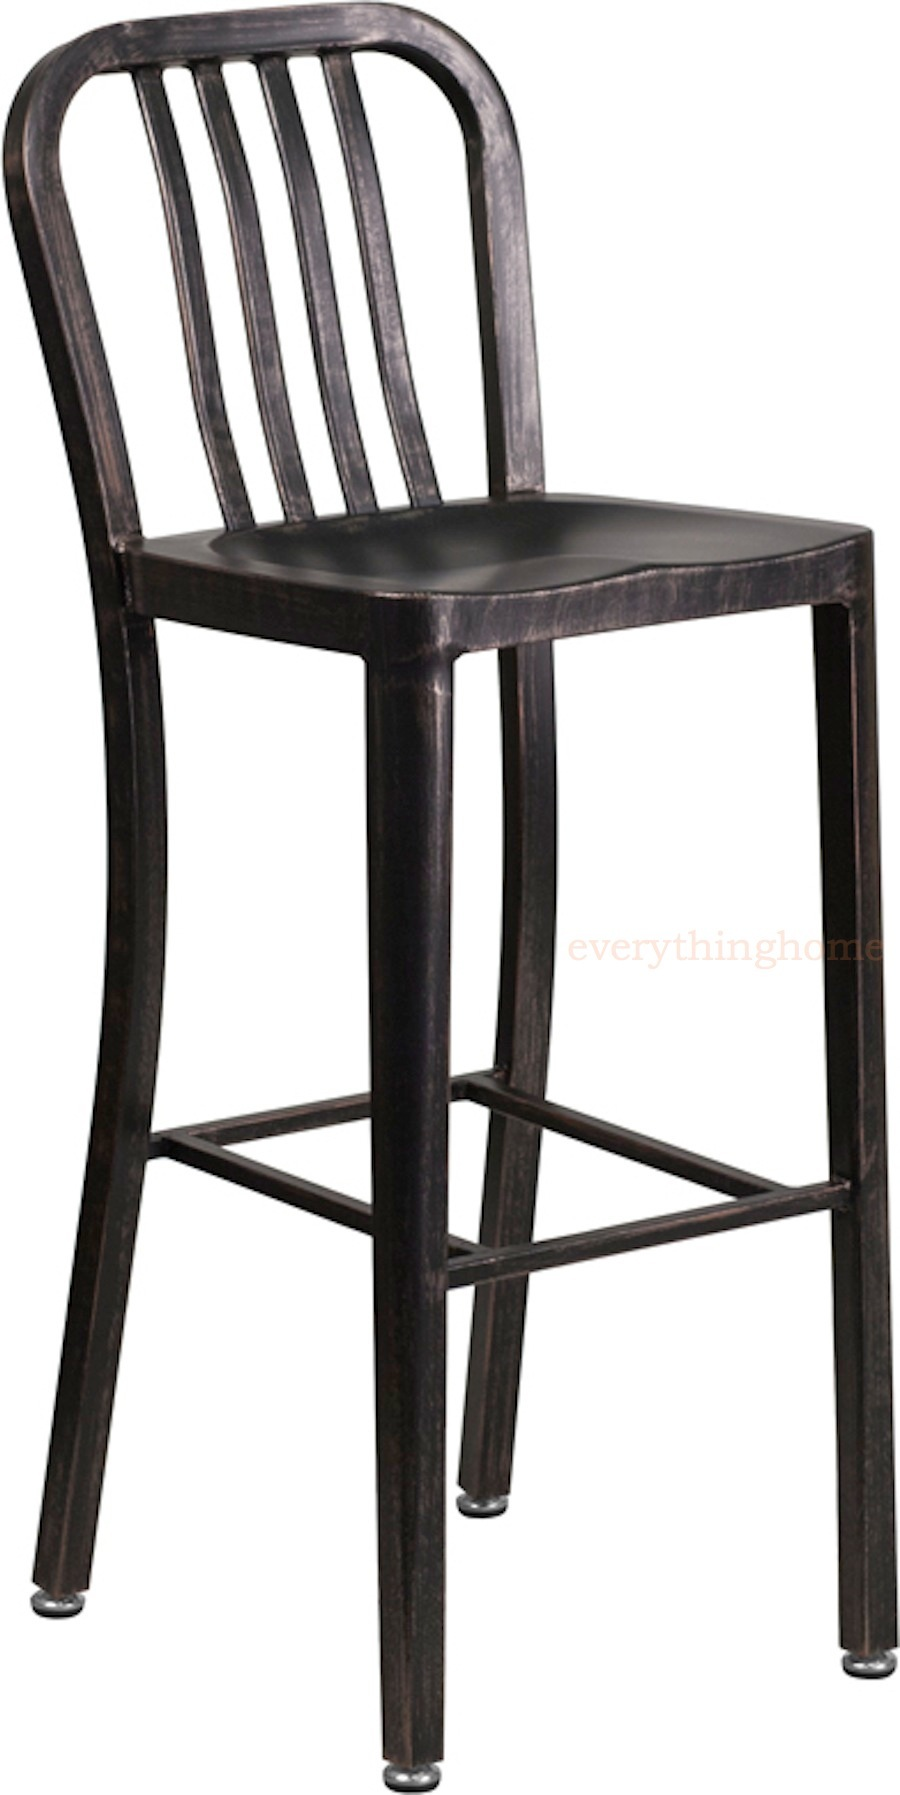 Swell Details About Black Antiqued Gold Navy Style Bar Stool High Top Cafe Patio Chair In Outdoor Gmtry Best Dining Table And Chair Ideas Images Gmtryco